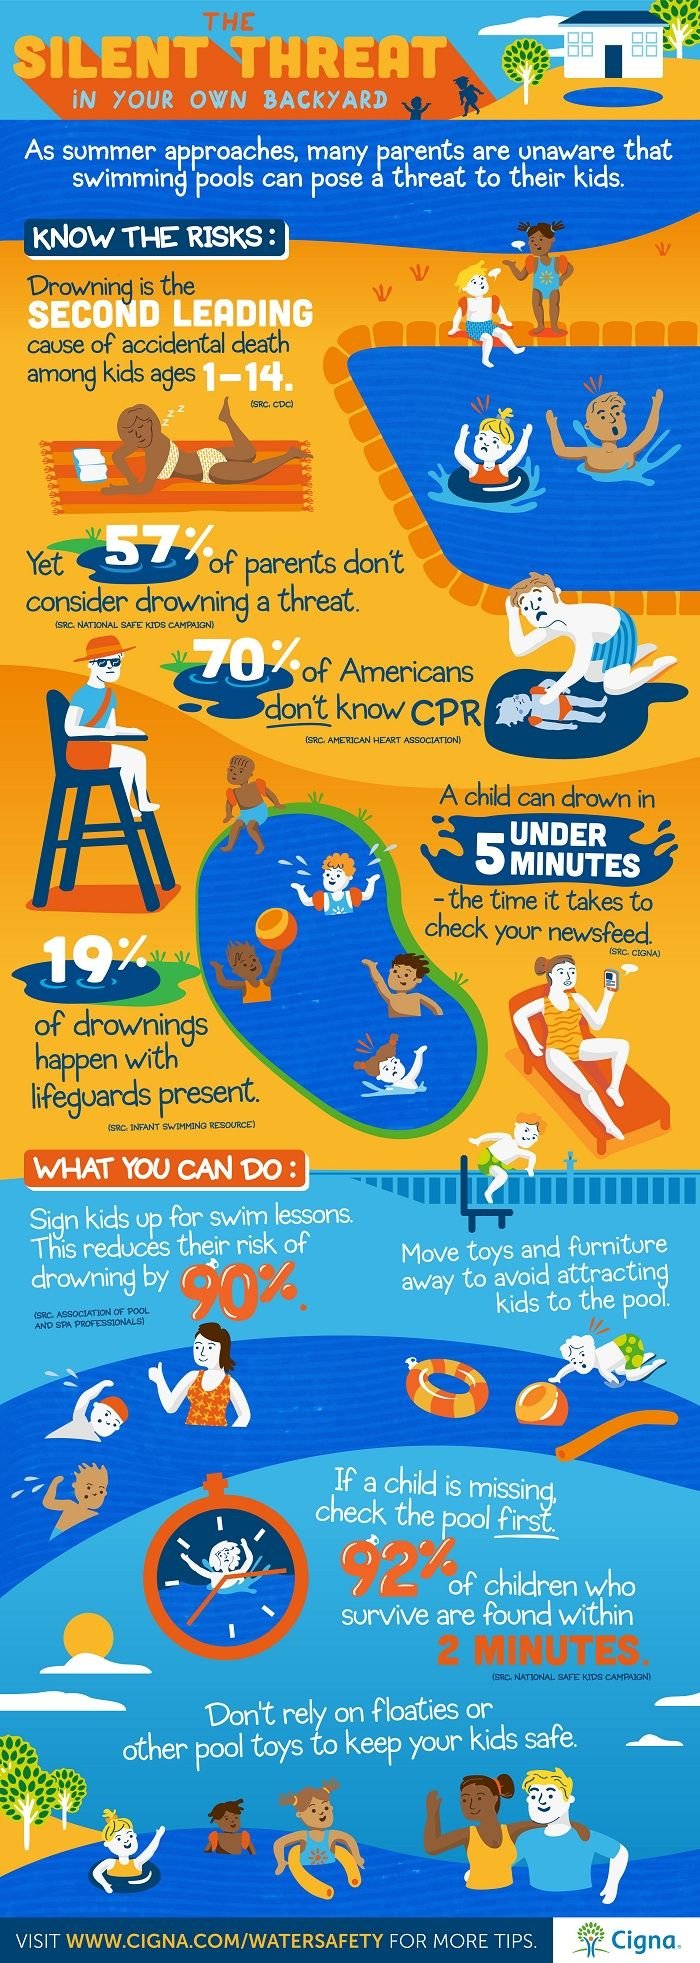 22 best ymca water safety images on pinterest water safety swim